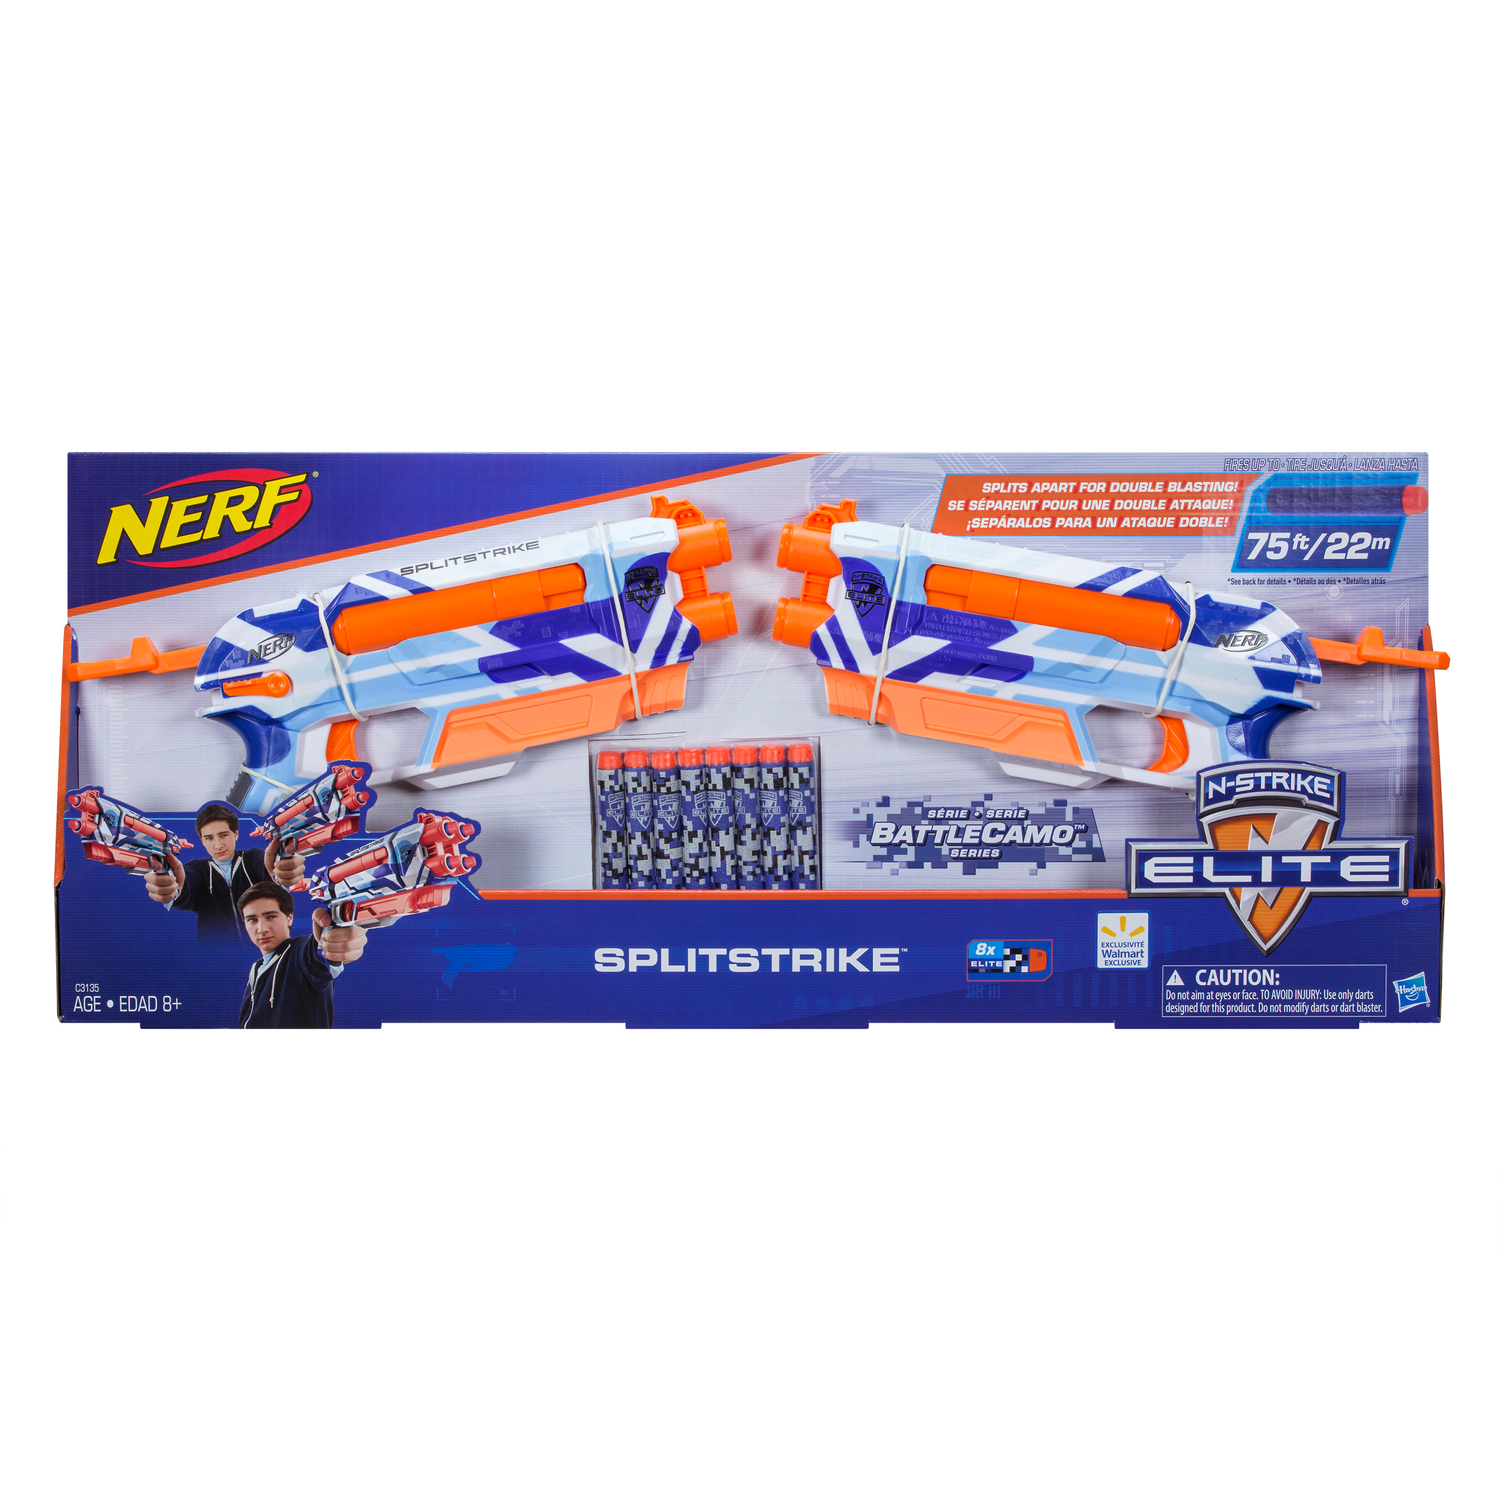 Nerf N-Strike Split Strike BattleCamo